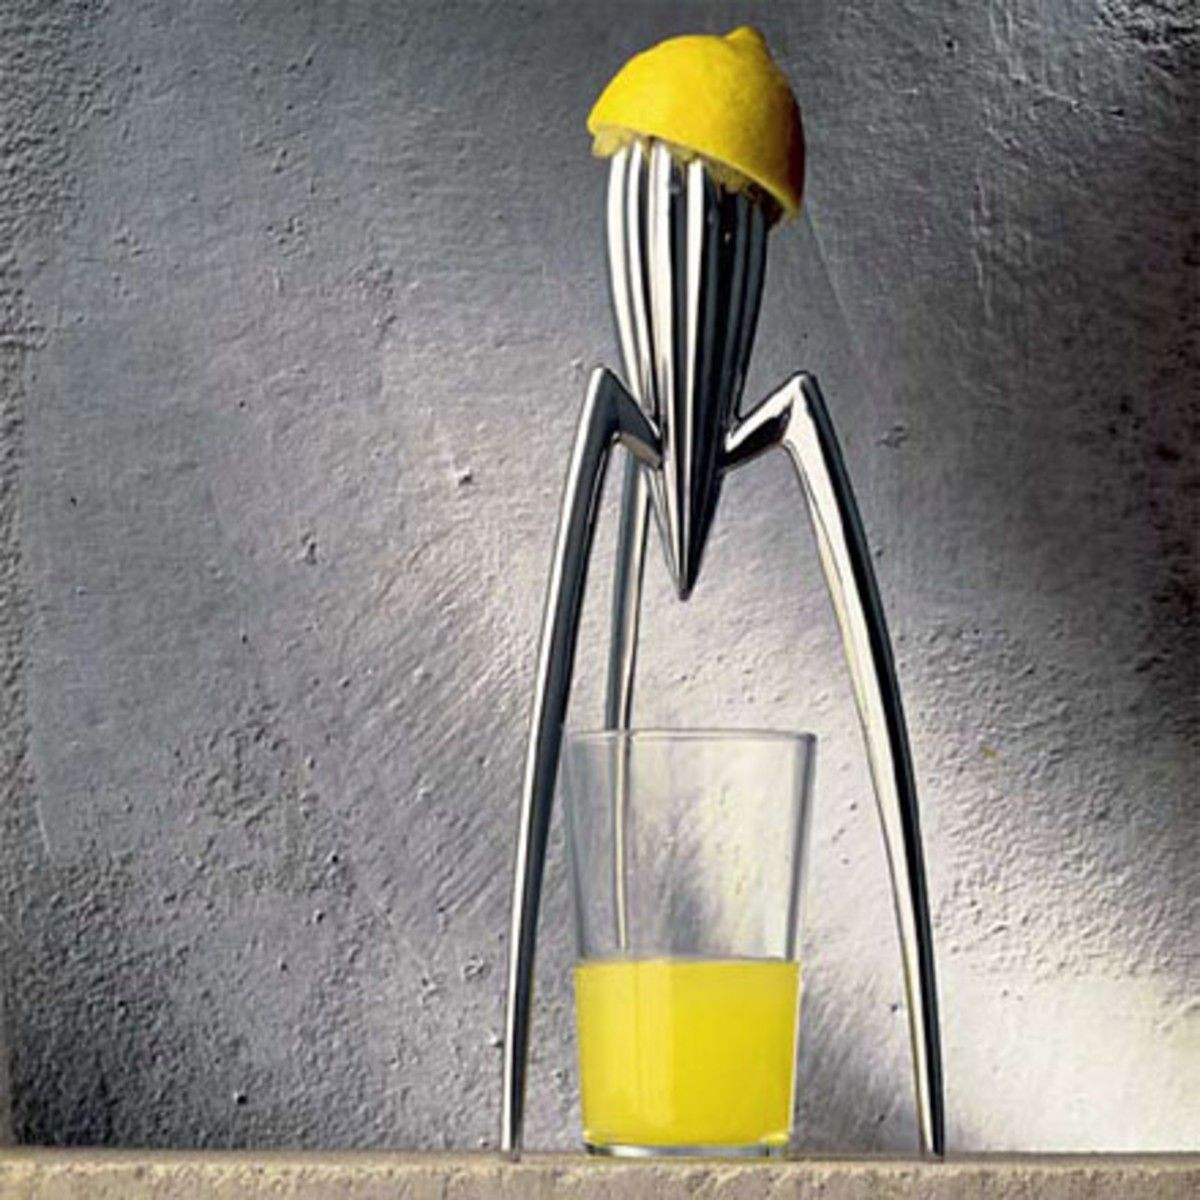 Philippe starck kitchen products - Alessi Juicy Salf By Philippe Stark Unique Kitchen Gadgetsfamous